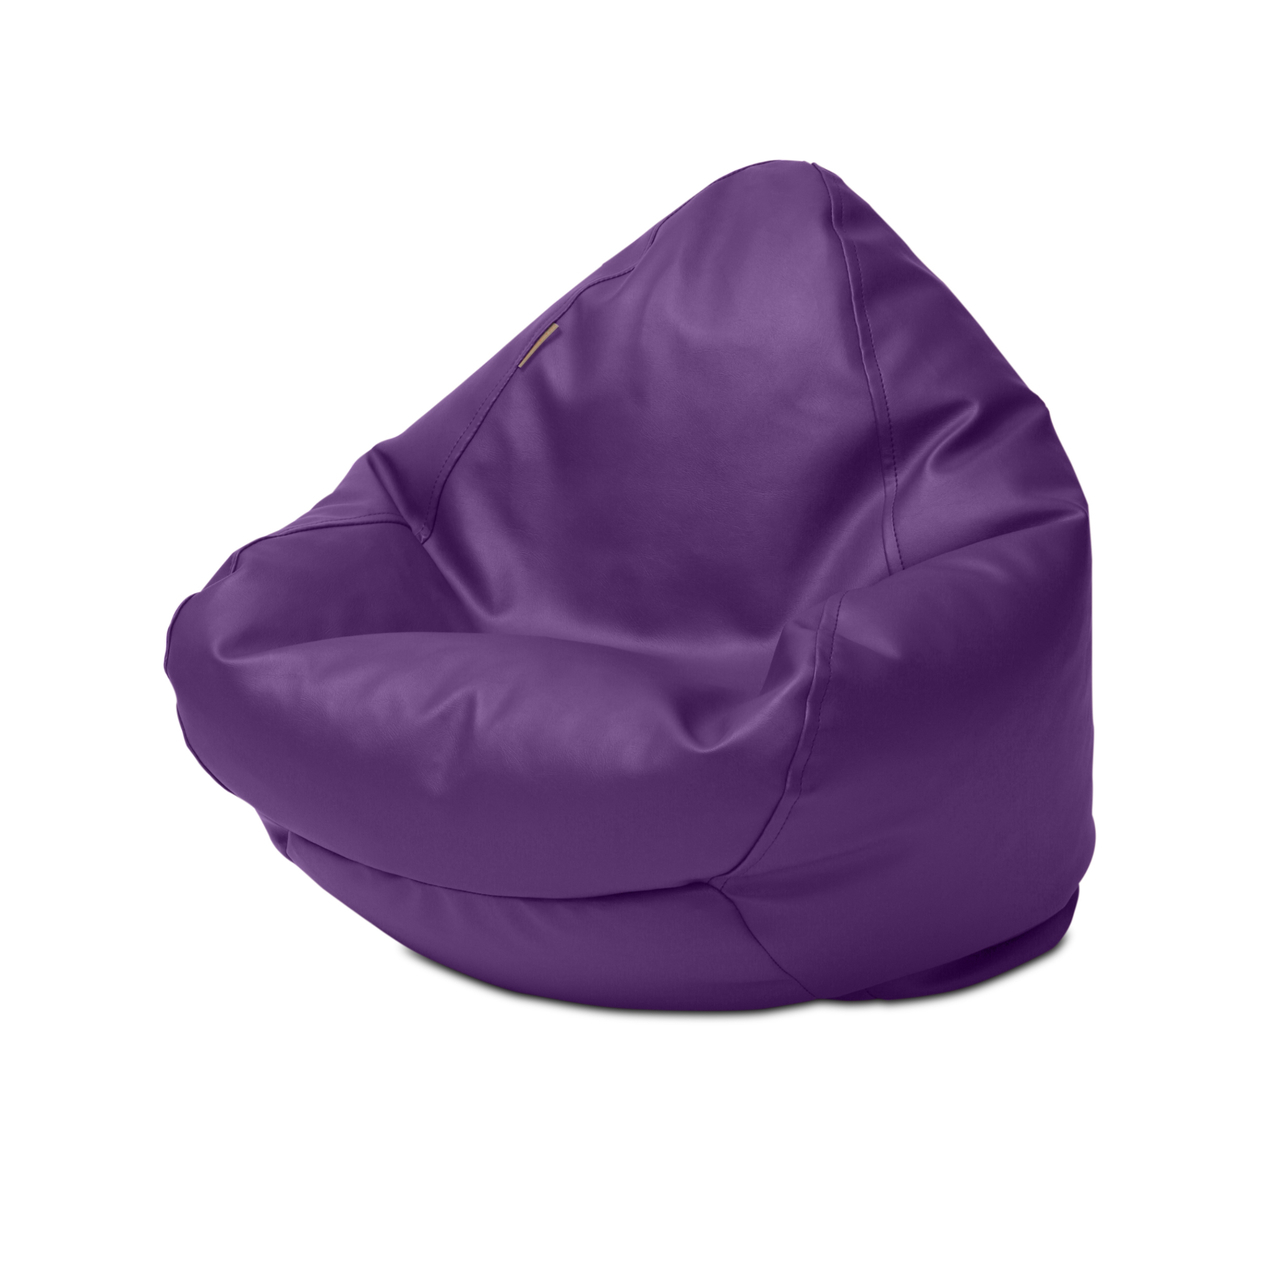 Classic Kids Bean Bag in grape